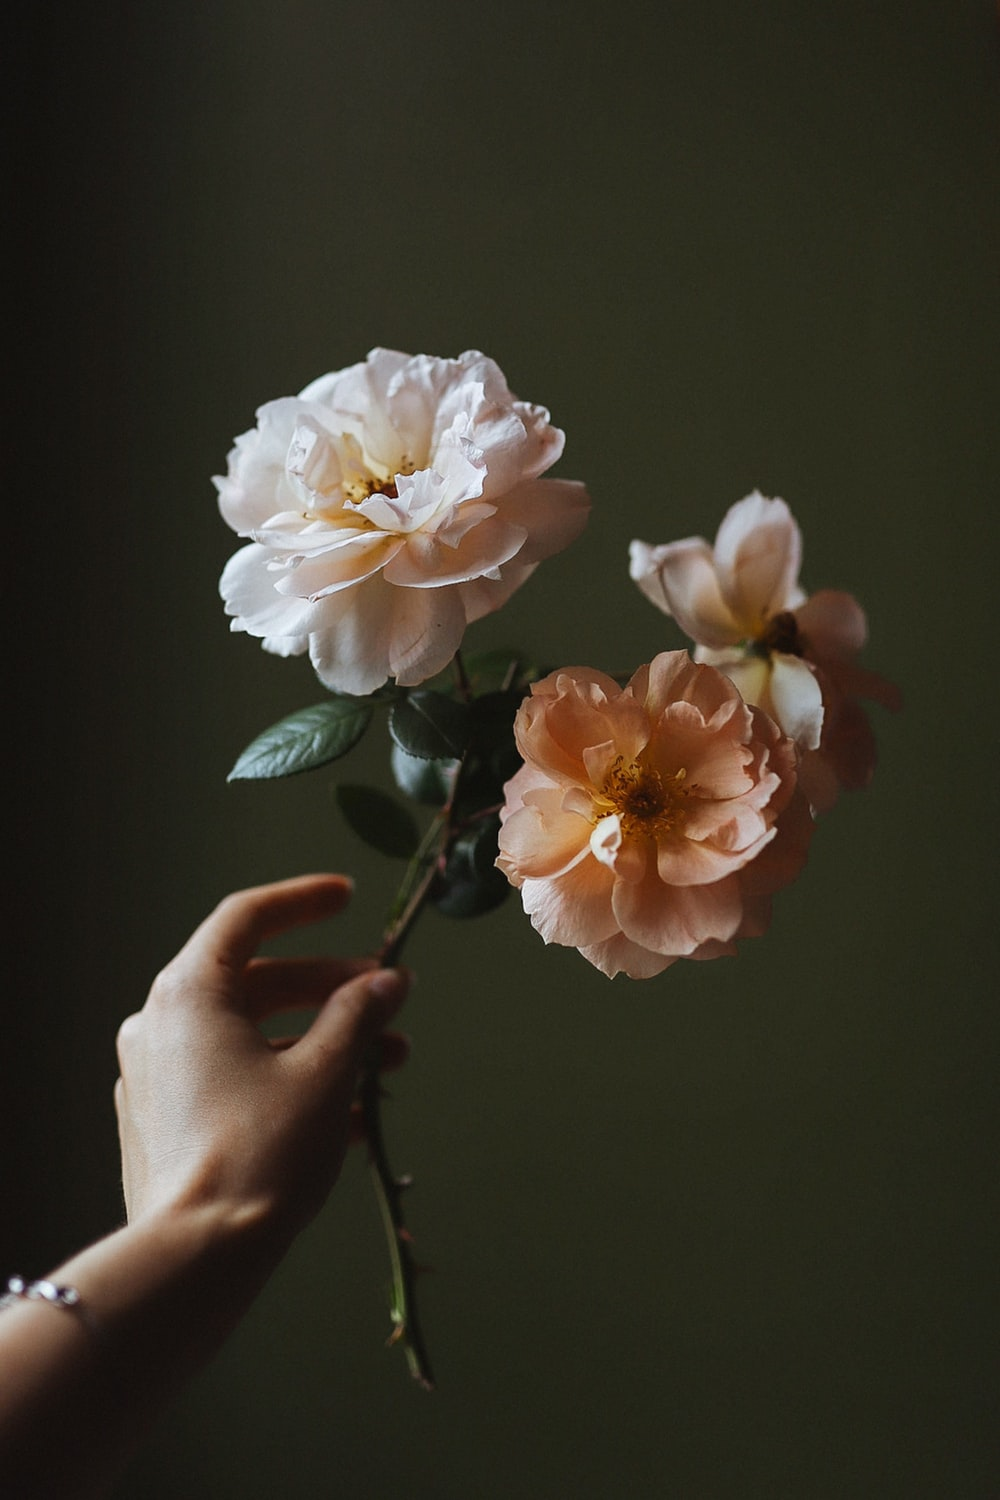 person holding white and pink flower